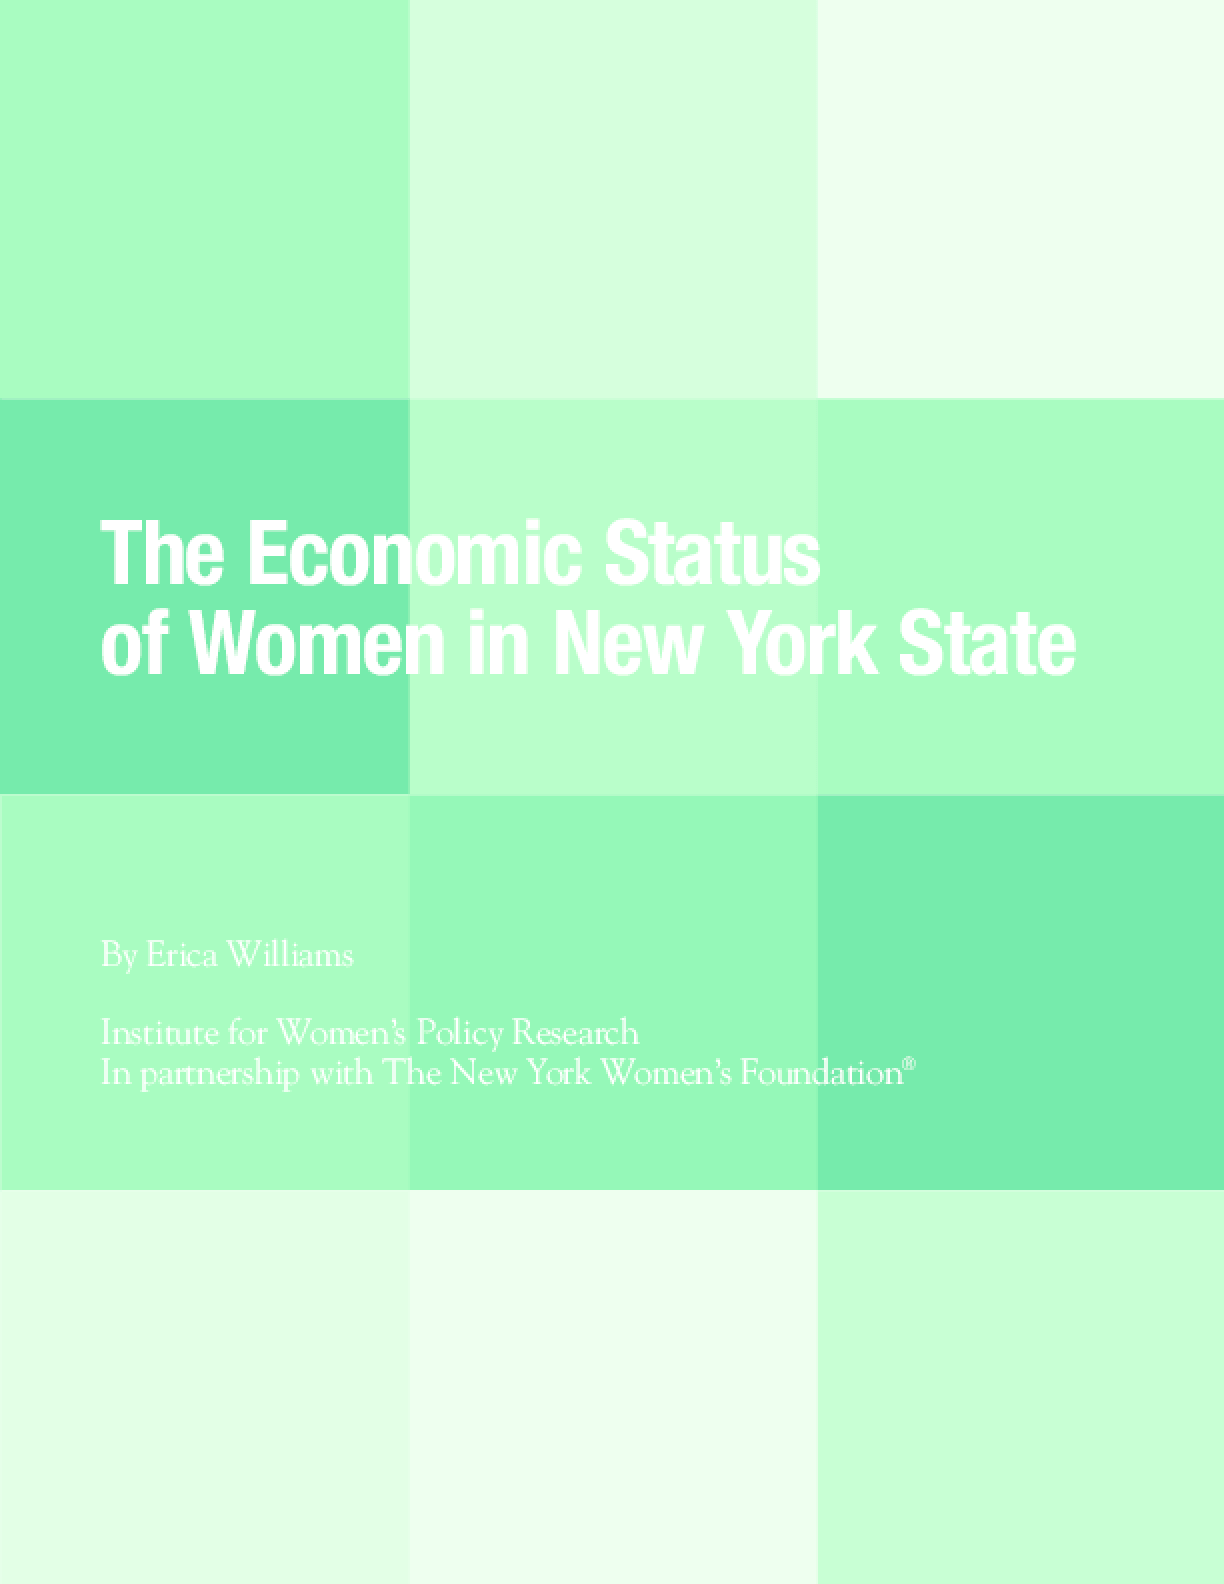 The Economic Status of Women in New York State